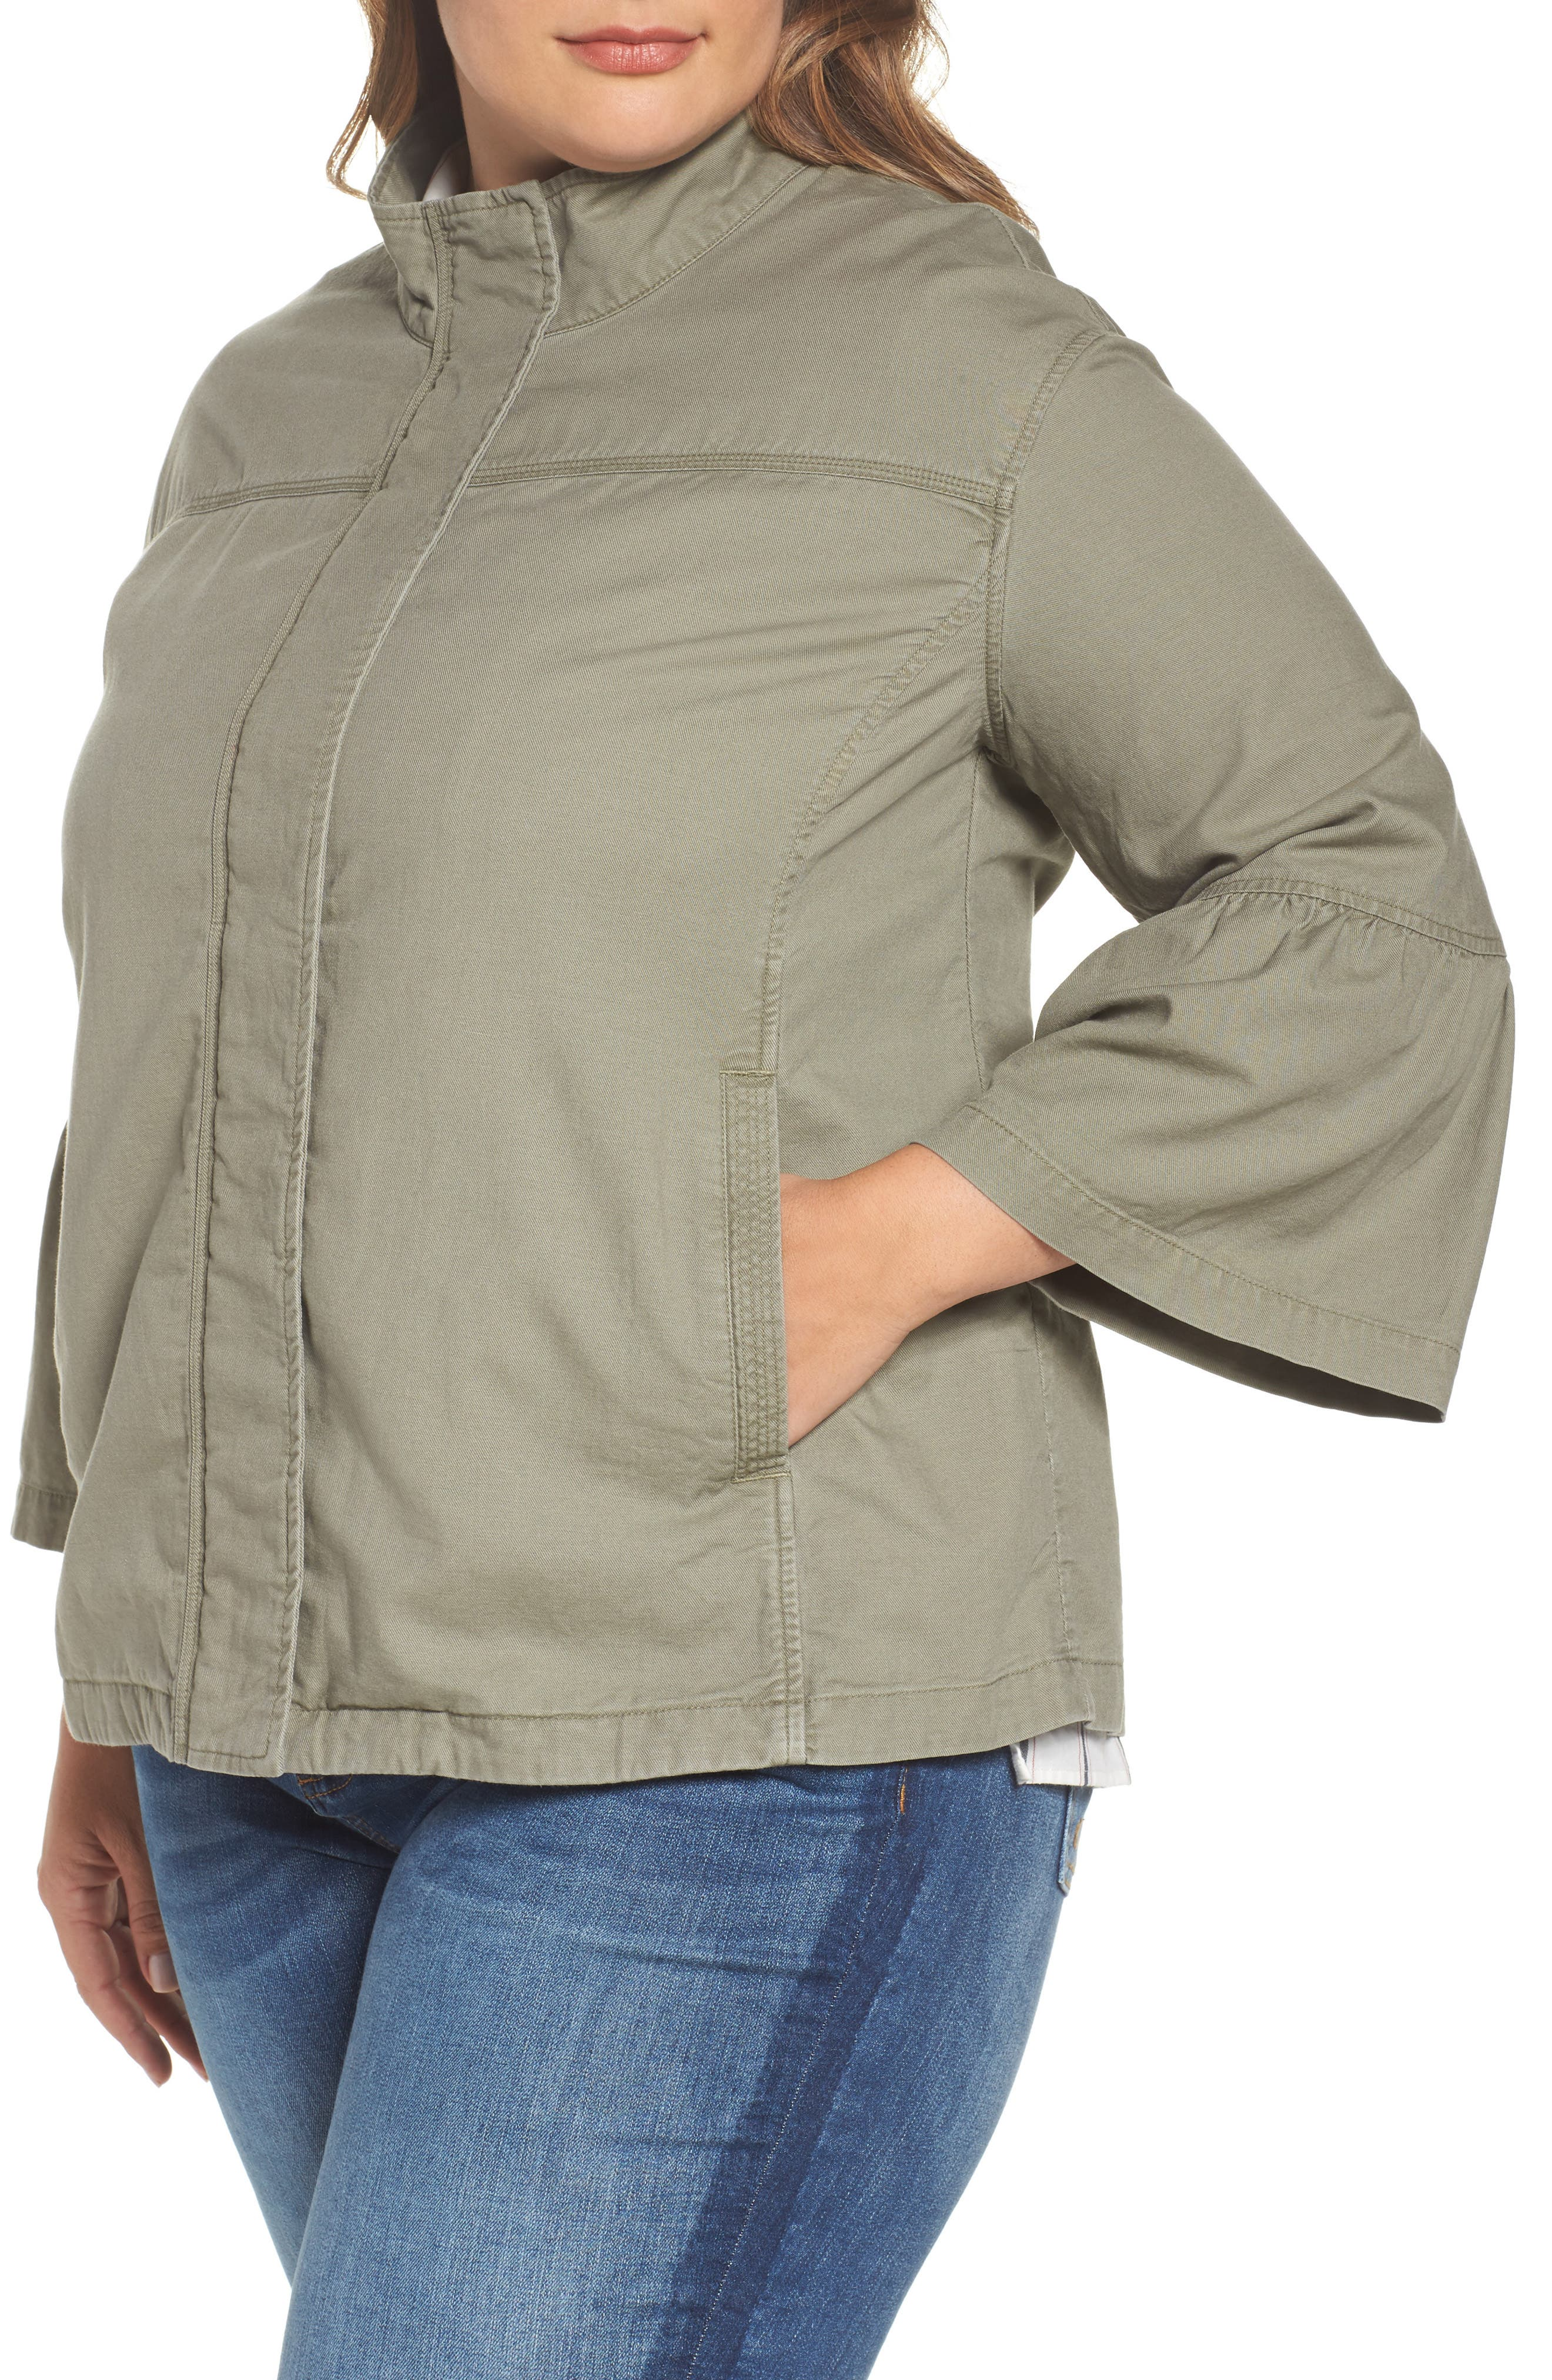 Bell Sleeve Utility Jacket,                             Alternate thumbnail 4, color,                             315